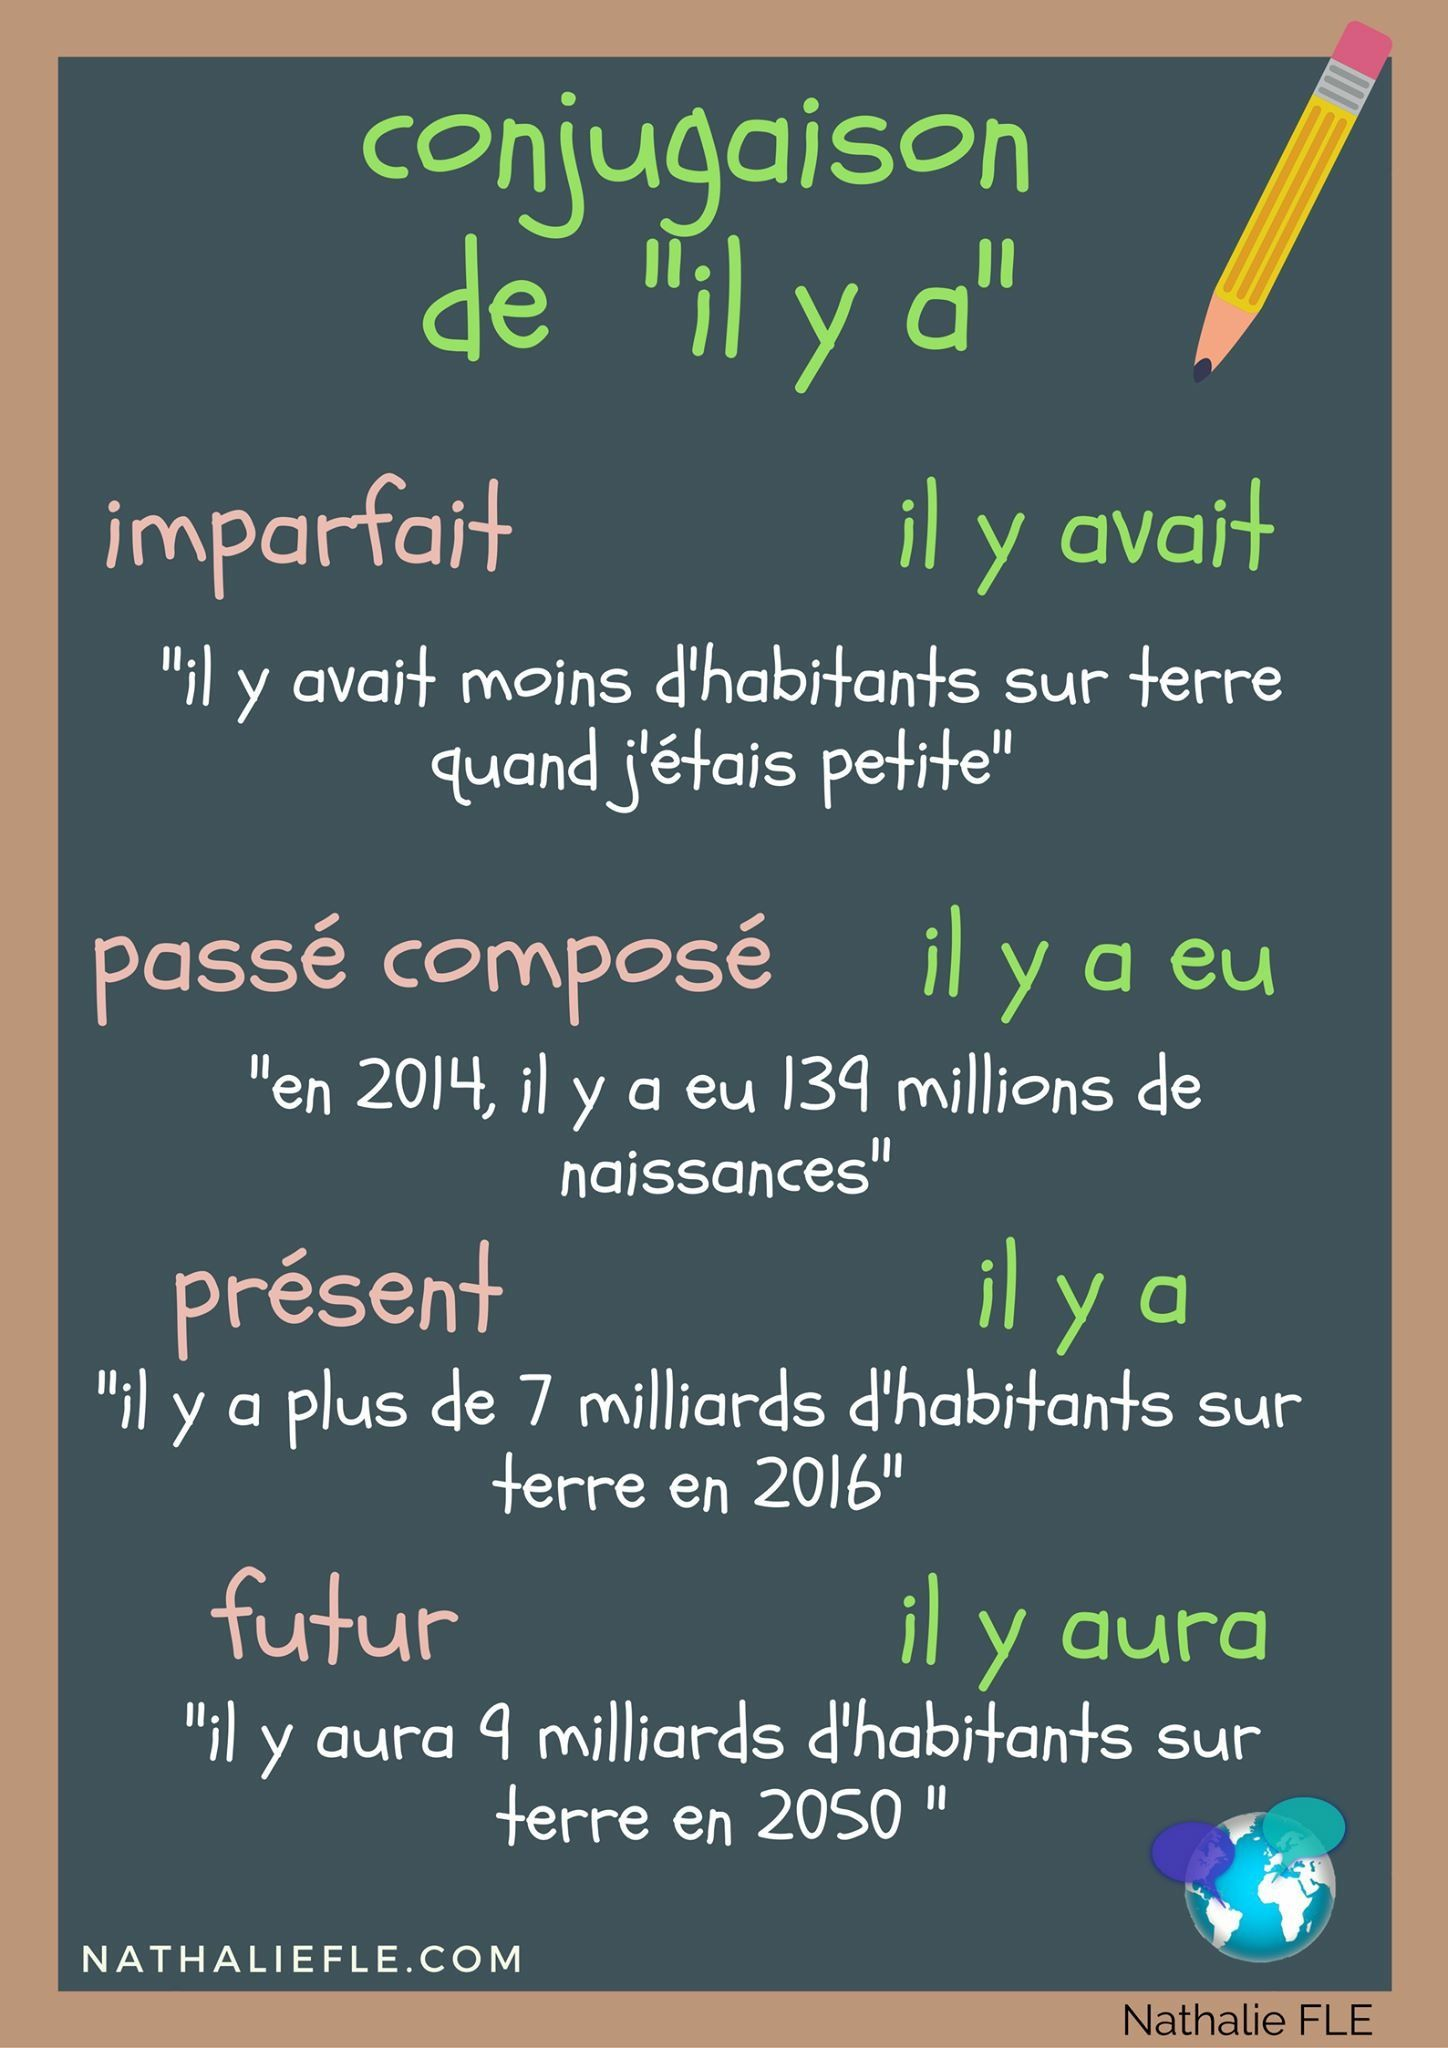 Pin By Sarah Edwards On Conjugaison French Flashcards French Grammar French Language Lessons